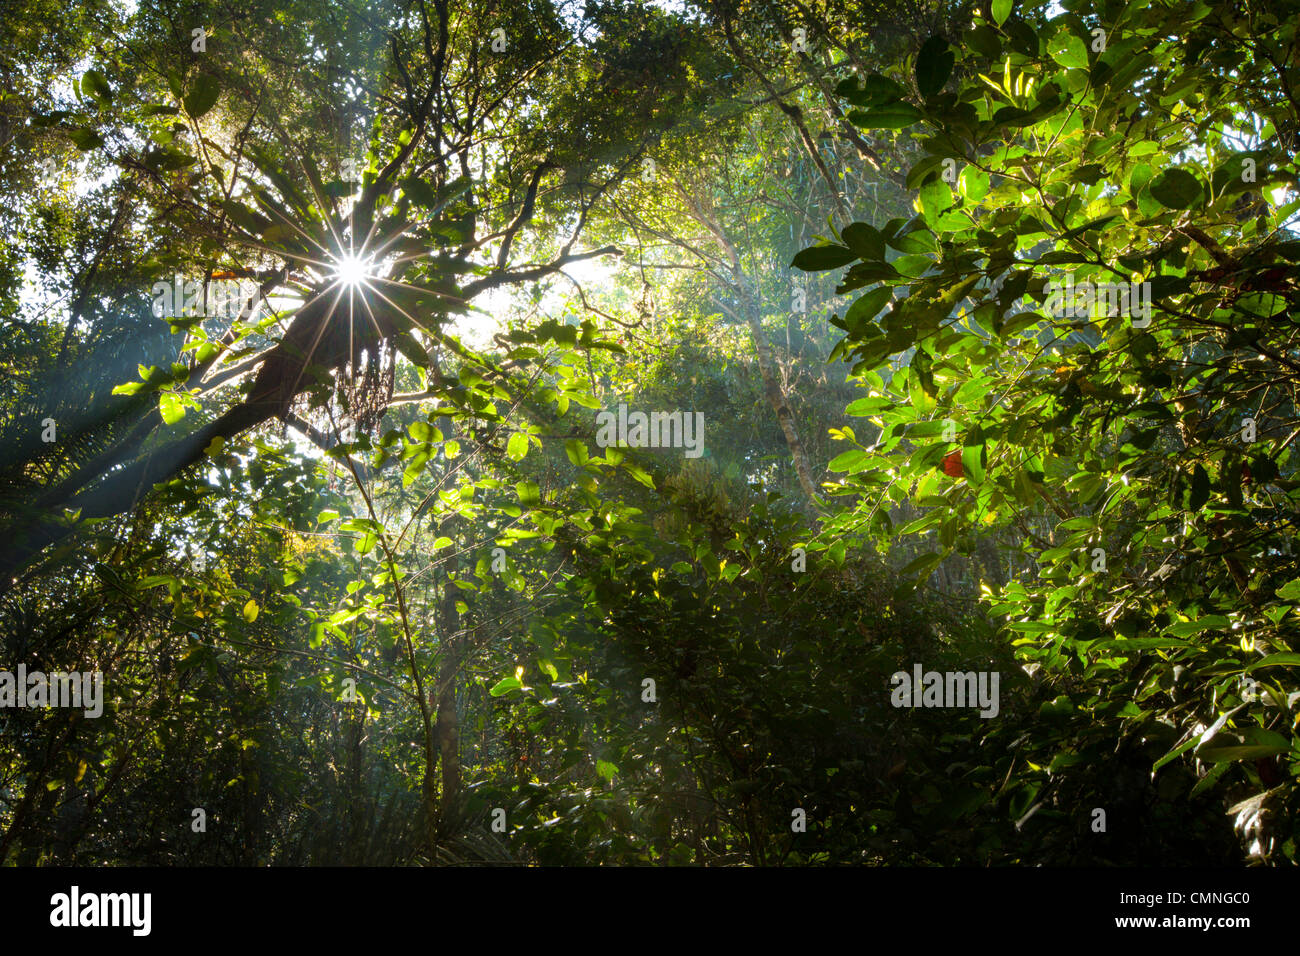 Early morning sun creating sunbeams through the humid rainforest canopy, Andasibe-Mantadia National Park, Madagascar. - Stock Image